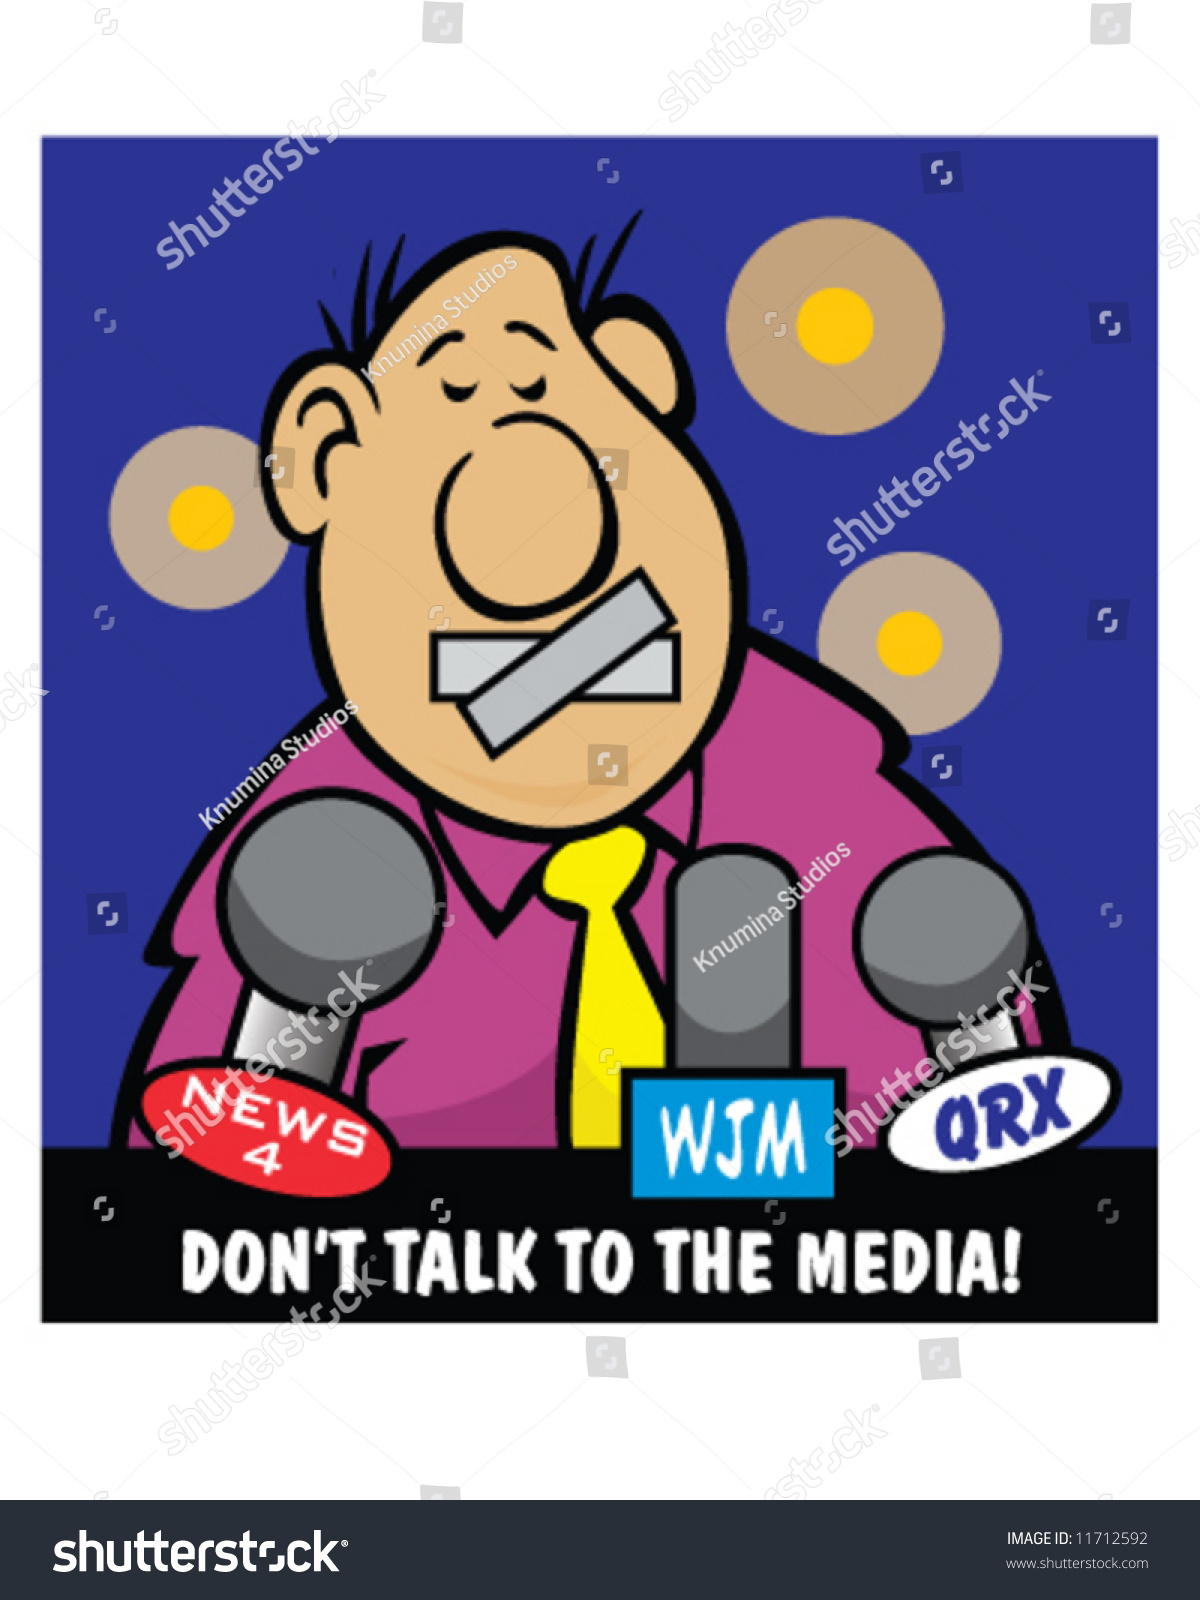 picture DON'T: talk to the press